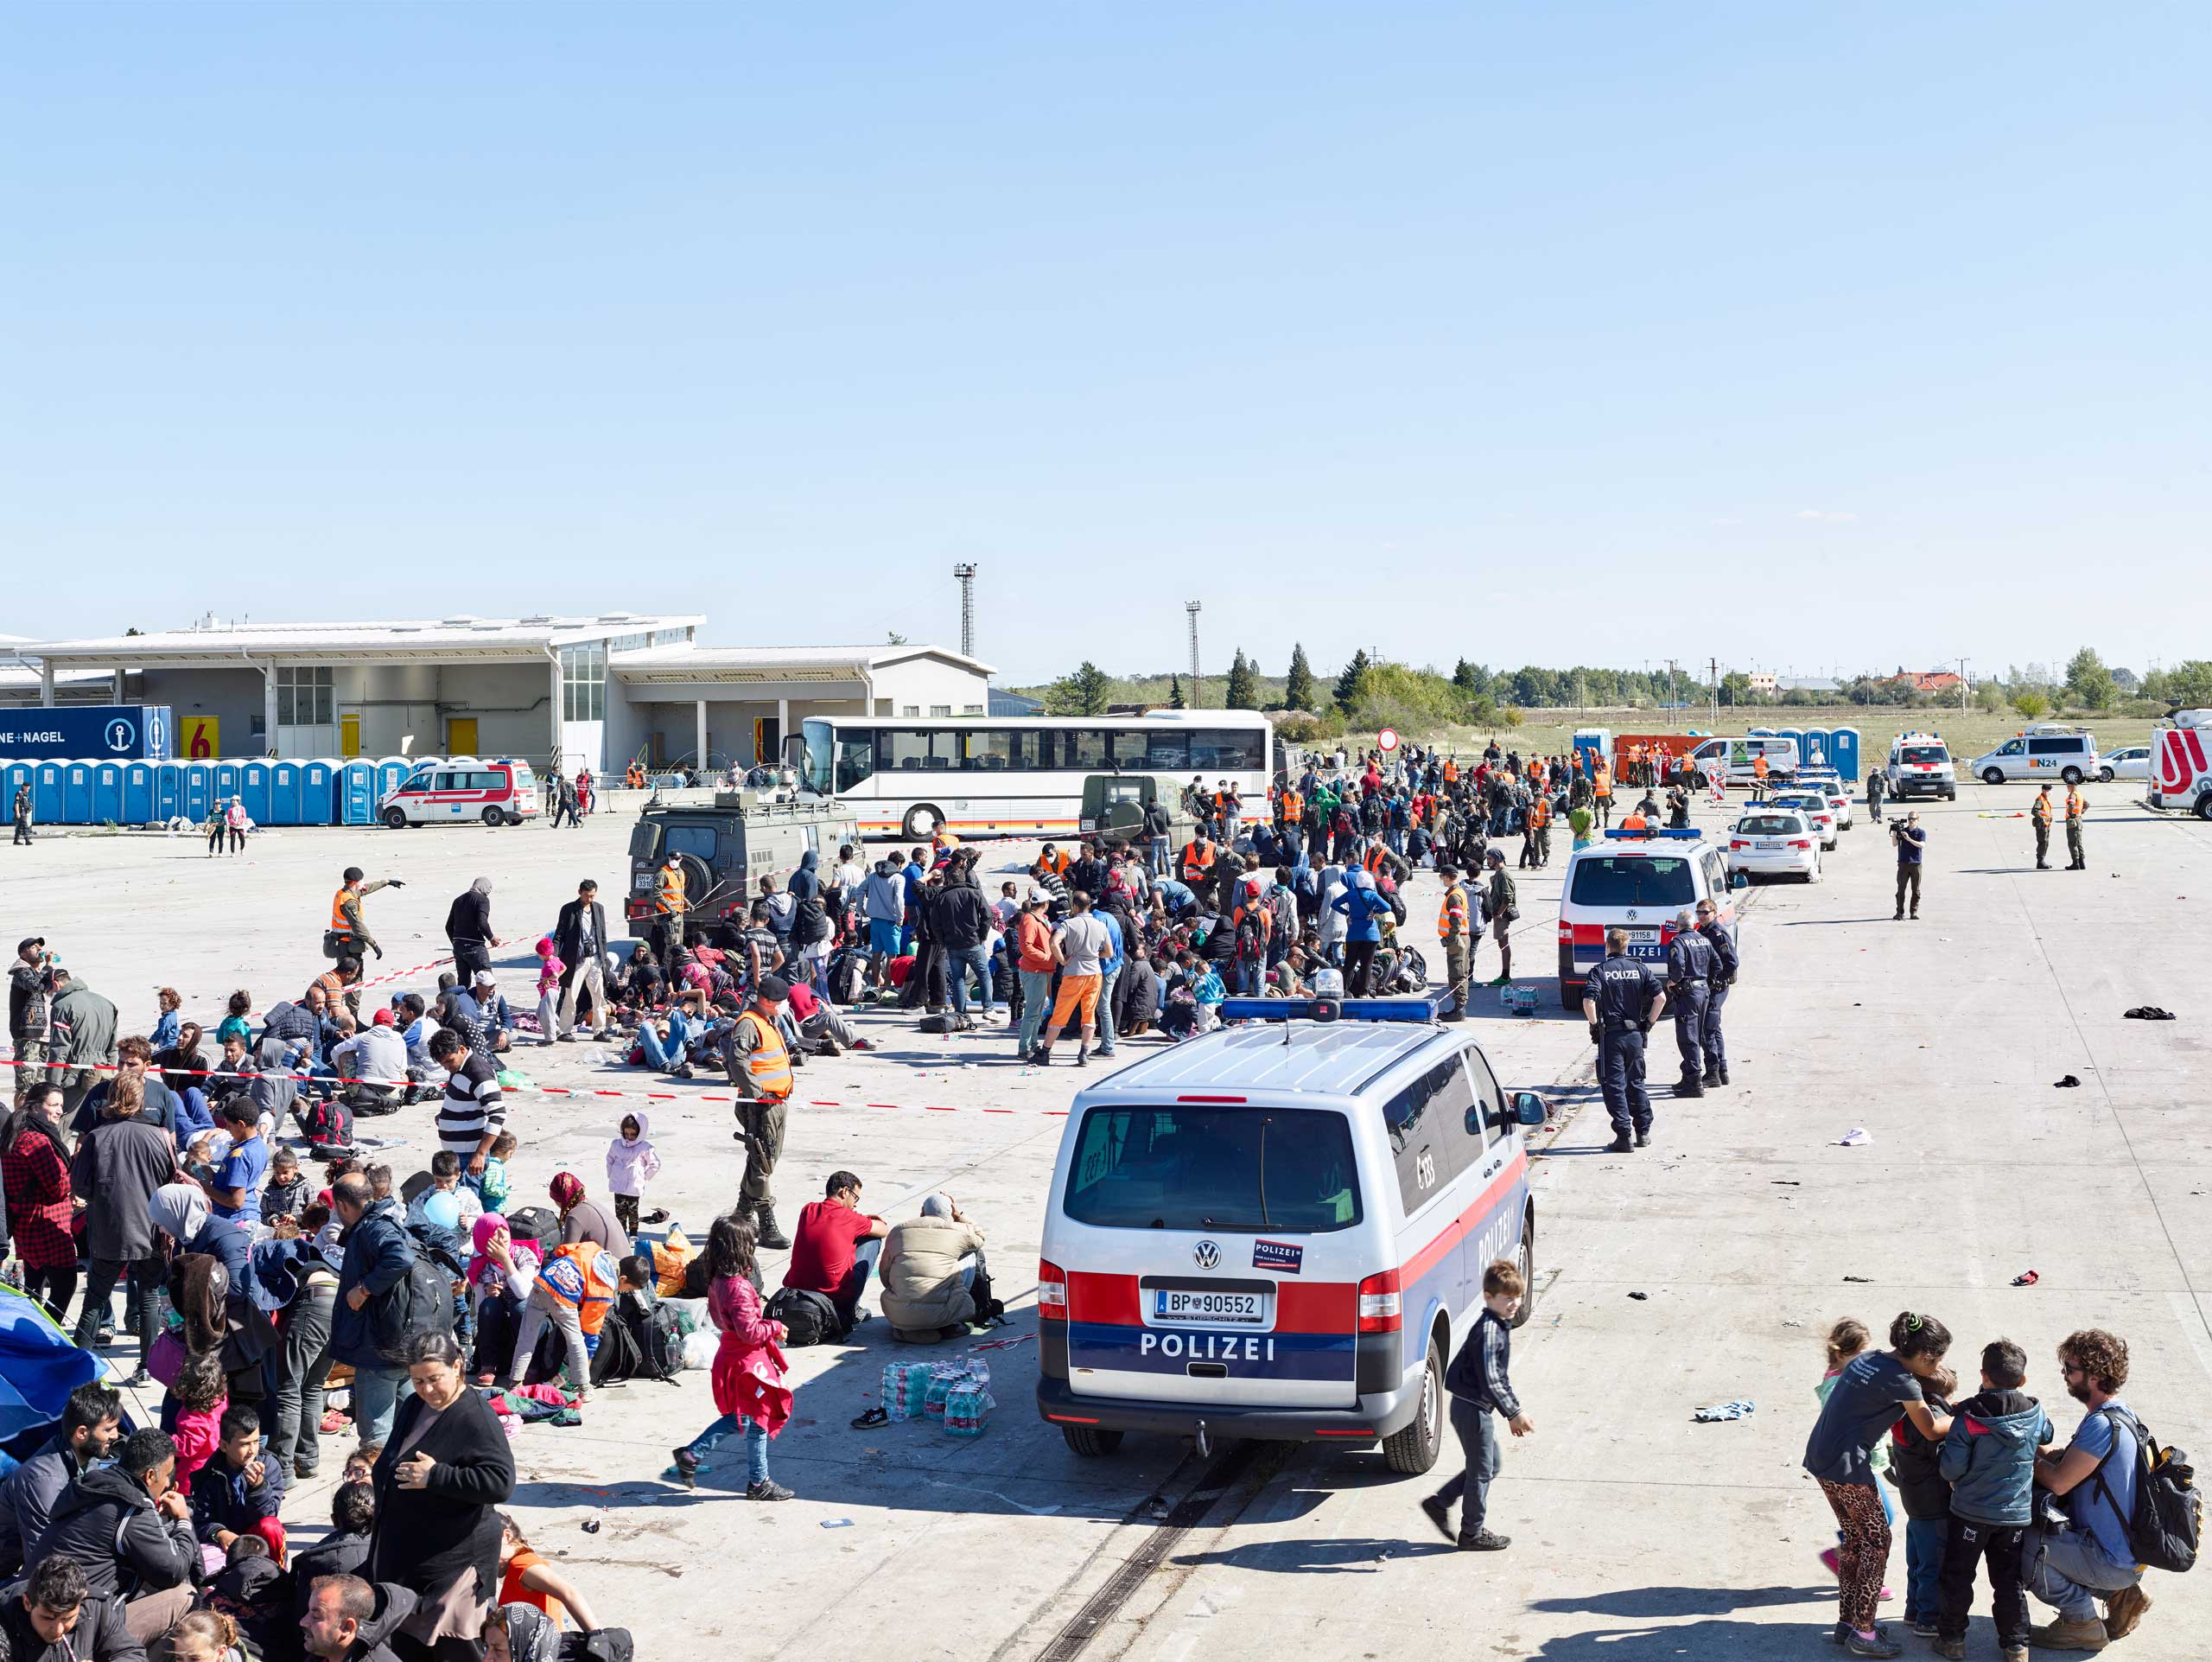 Refugees wait in Nickelsdorf, Austria, on the Hungary border, for buses to take them further into Europe.